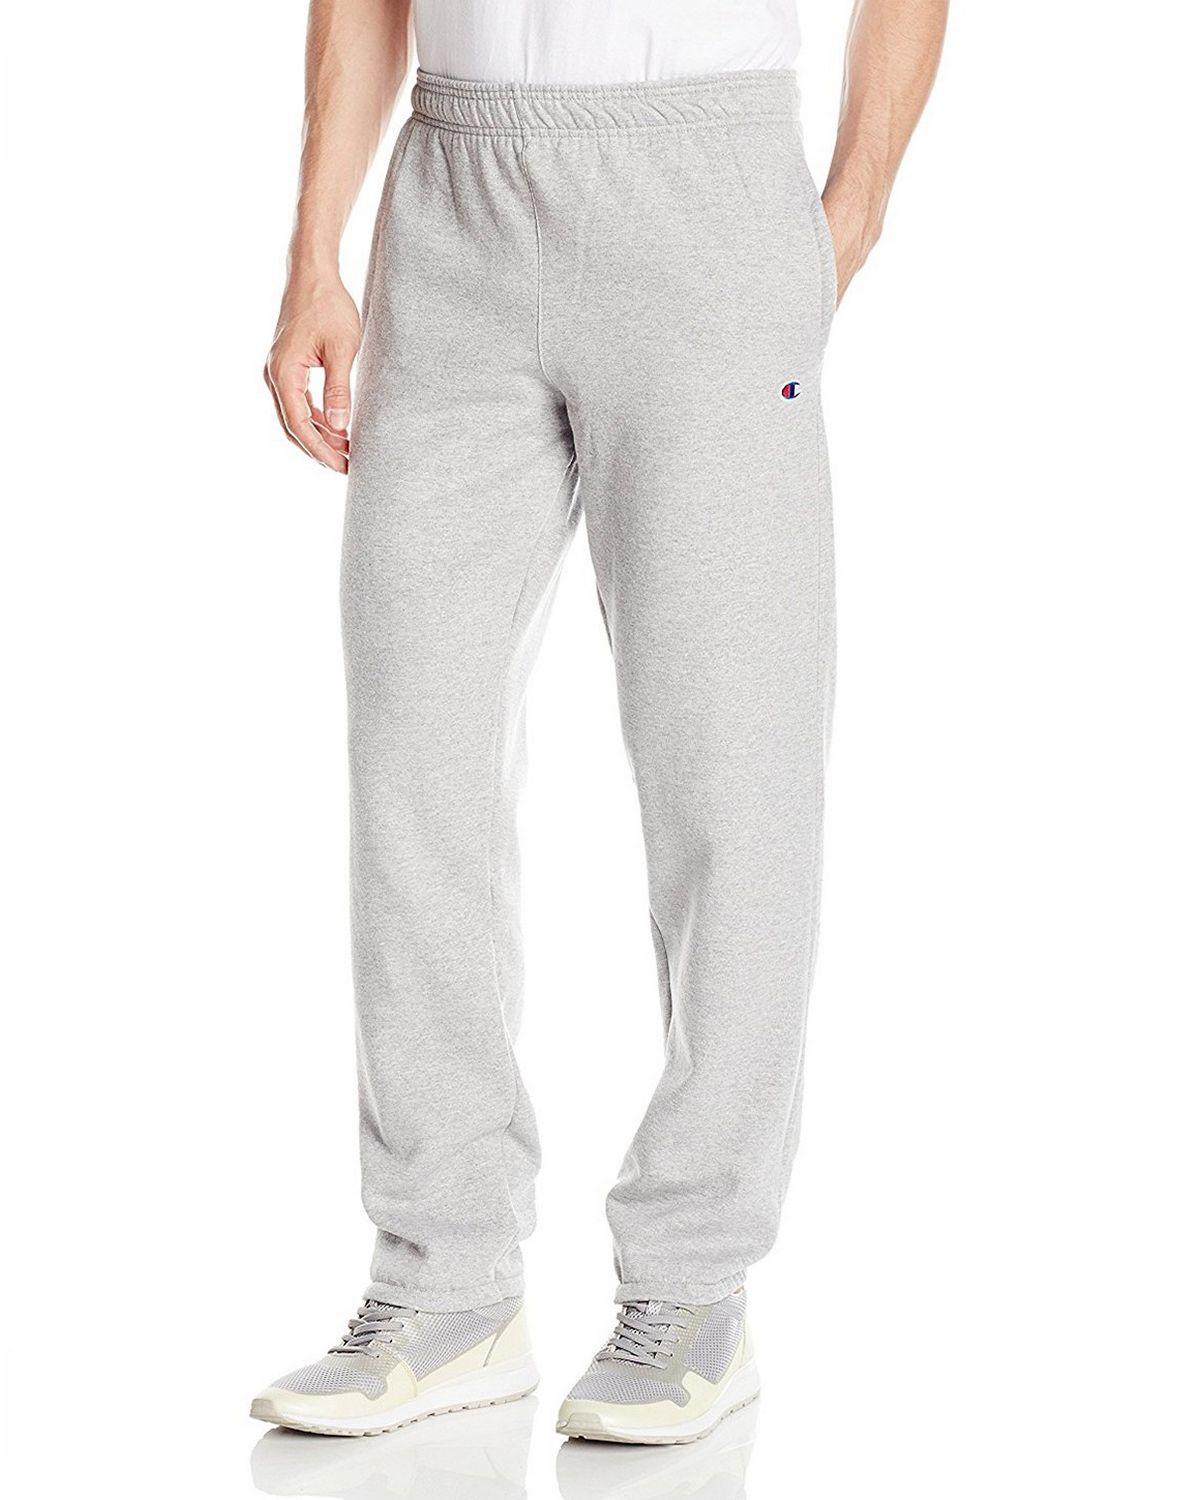 Champion P0894 Mens Powerblend Fleece Pants - Oxford Grey - S P0894